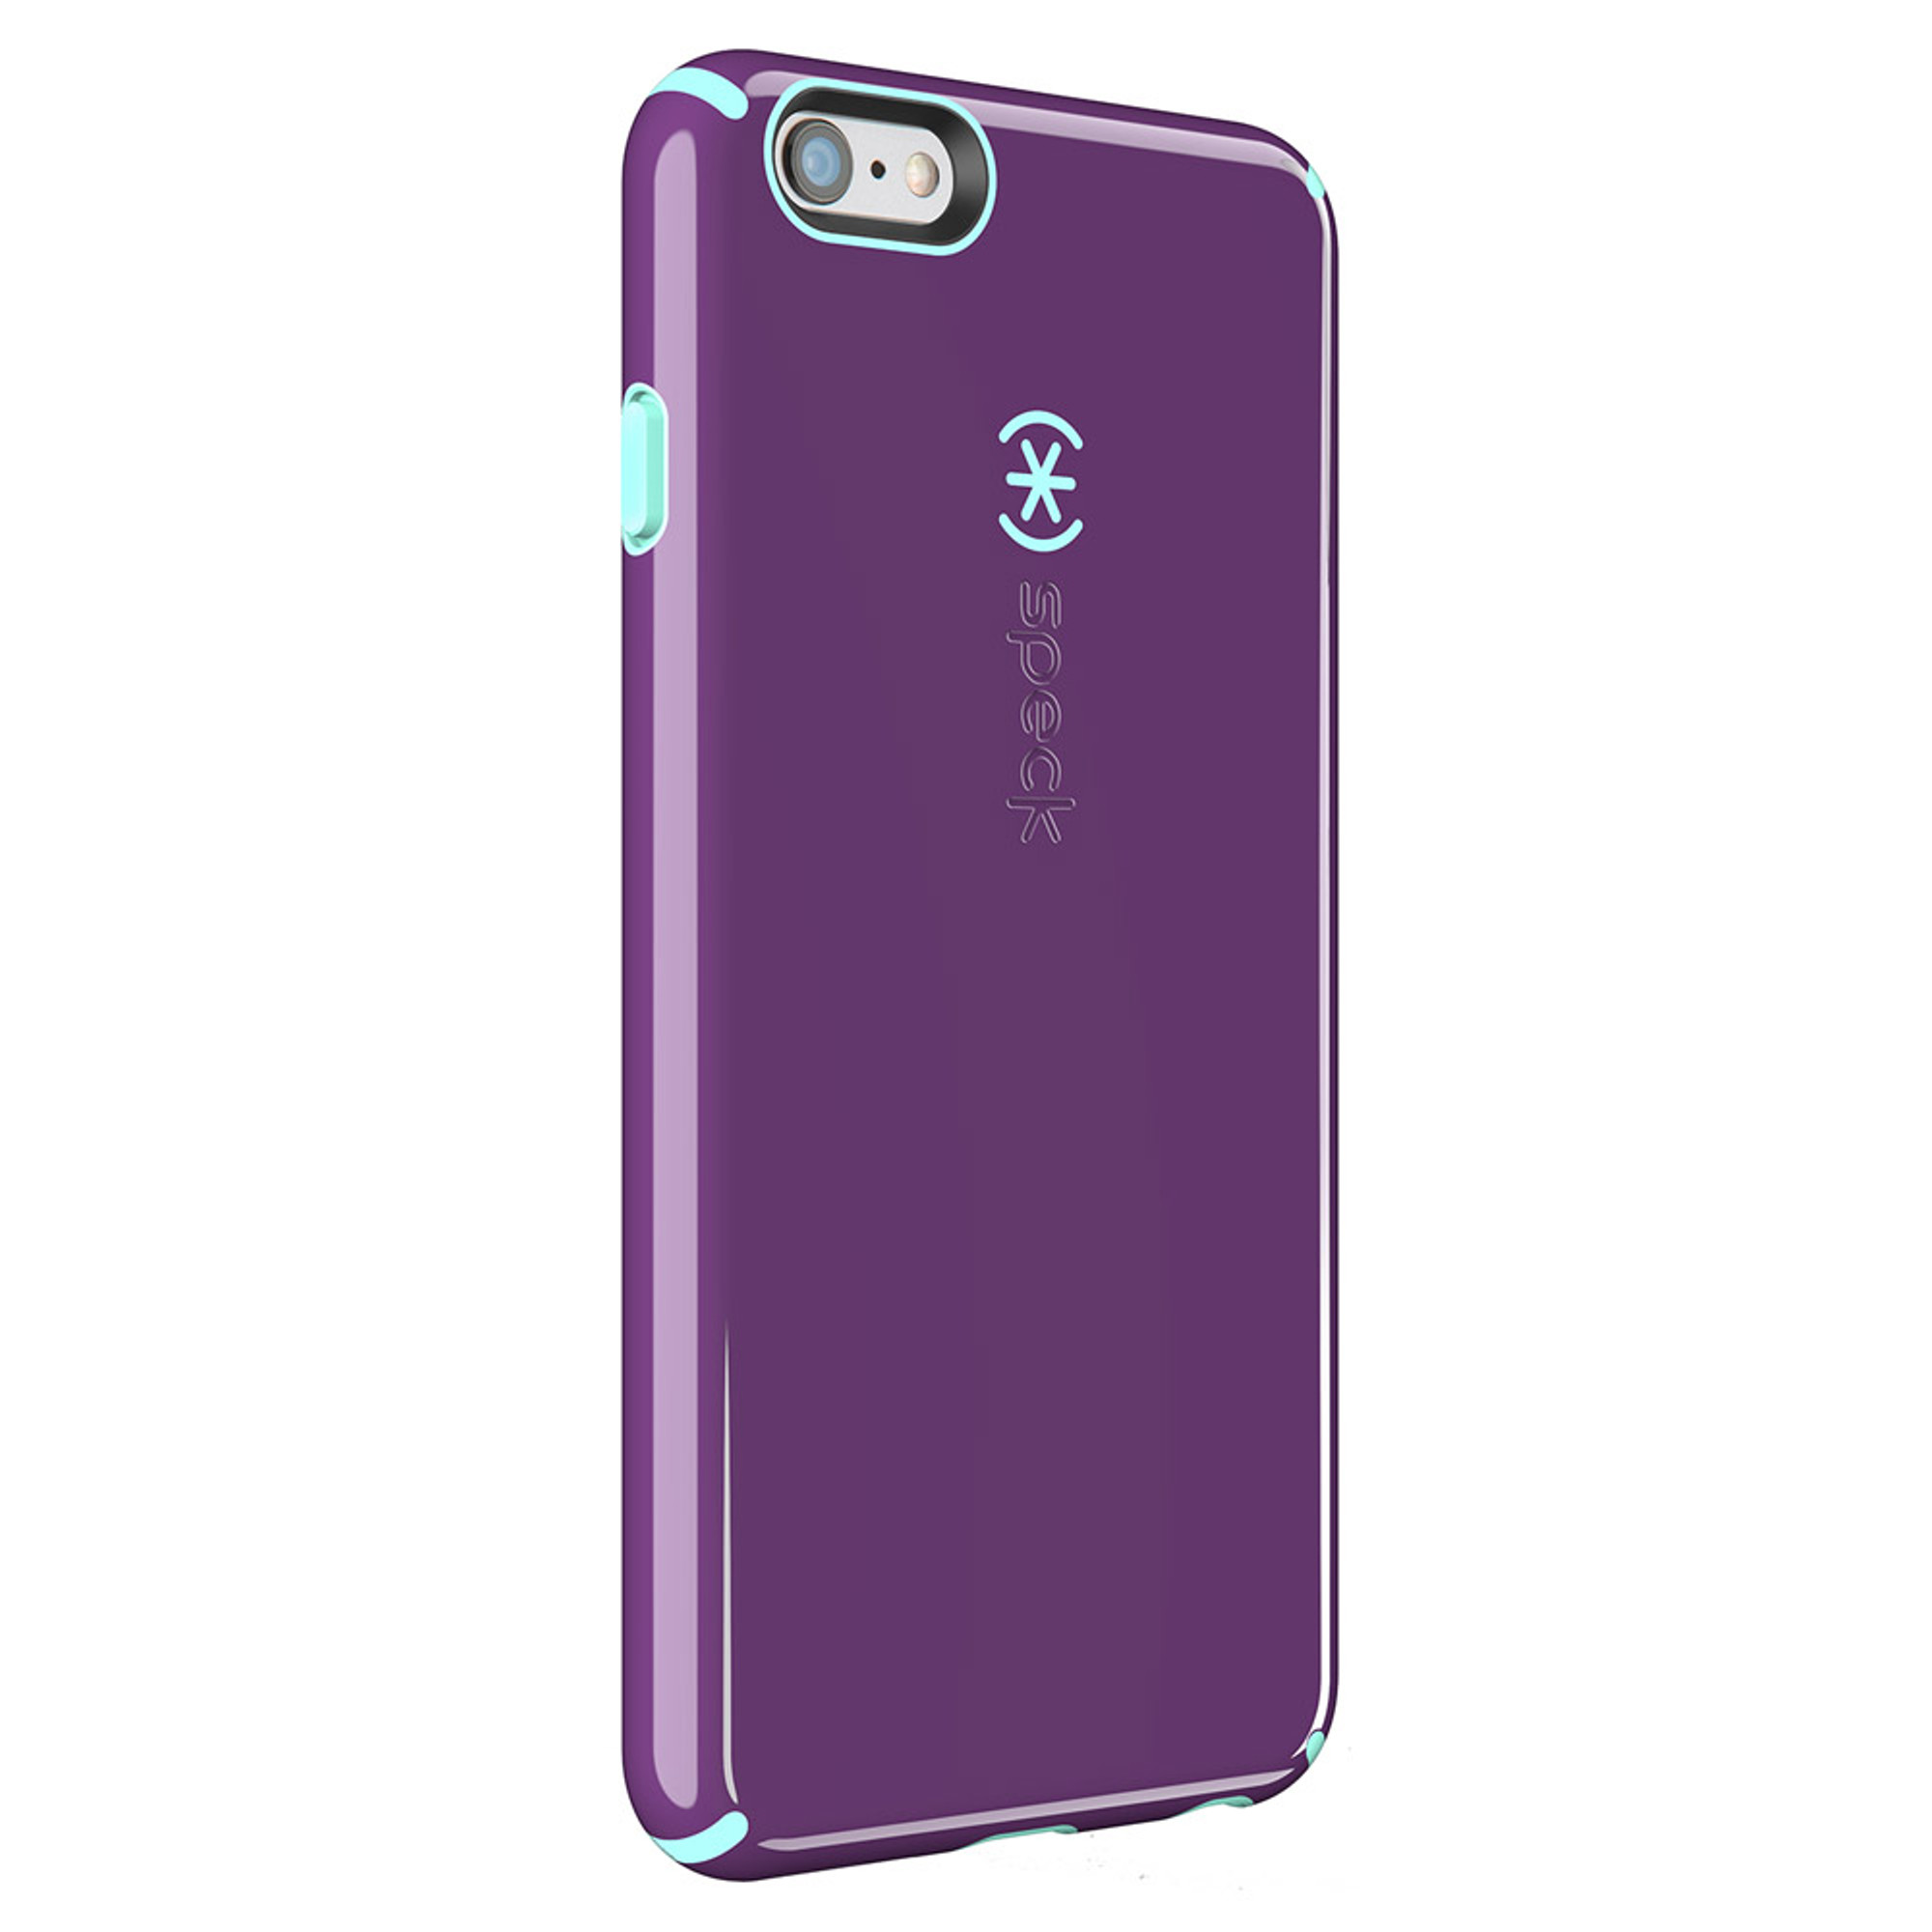 new concept b606a 197a9 Speck CandyShell iPhone 6S / 6 Case - Acai Purple / Aloe Green